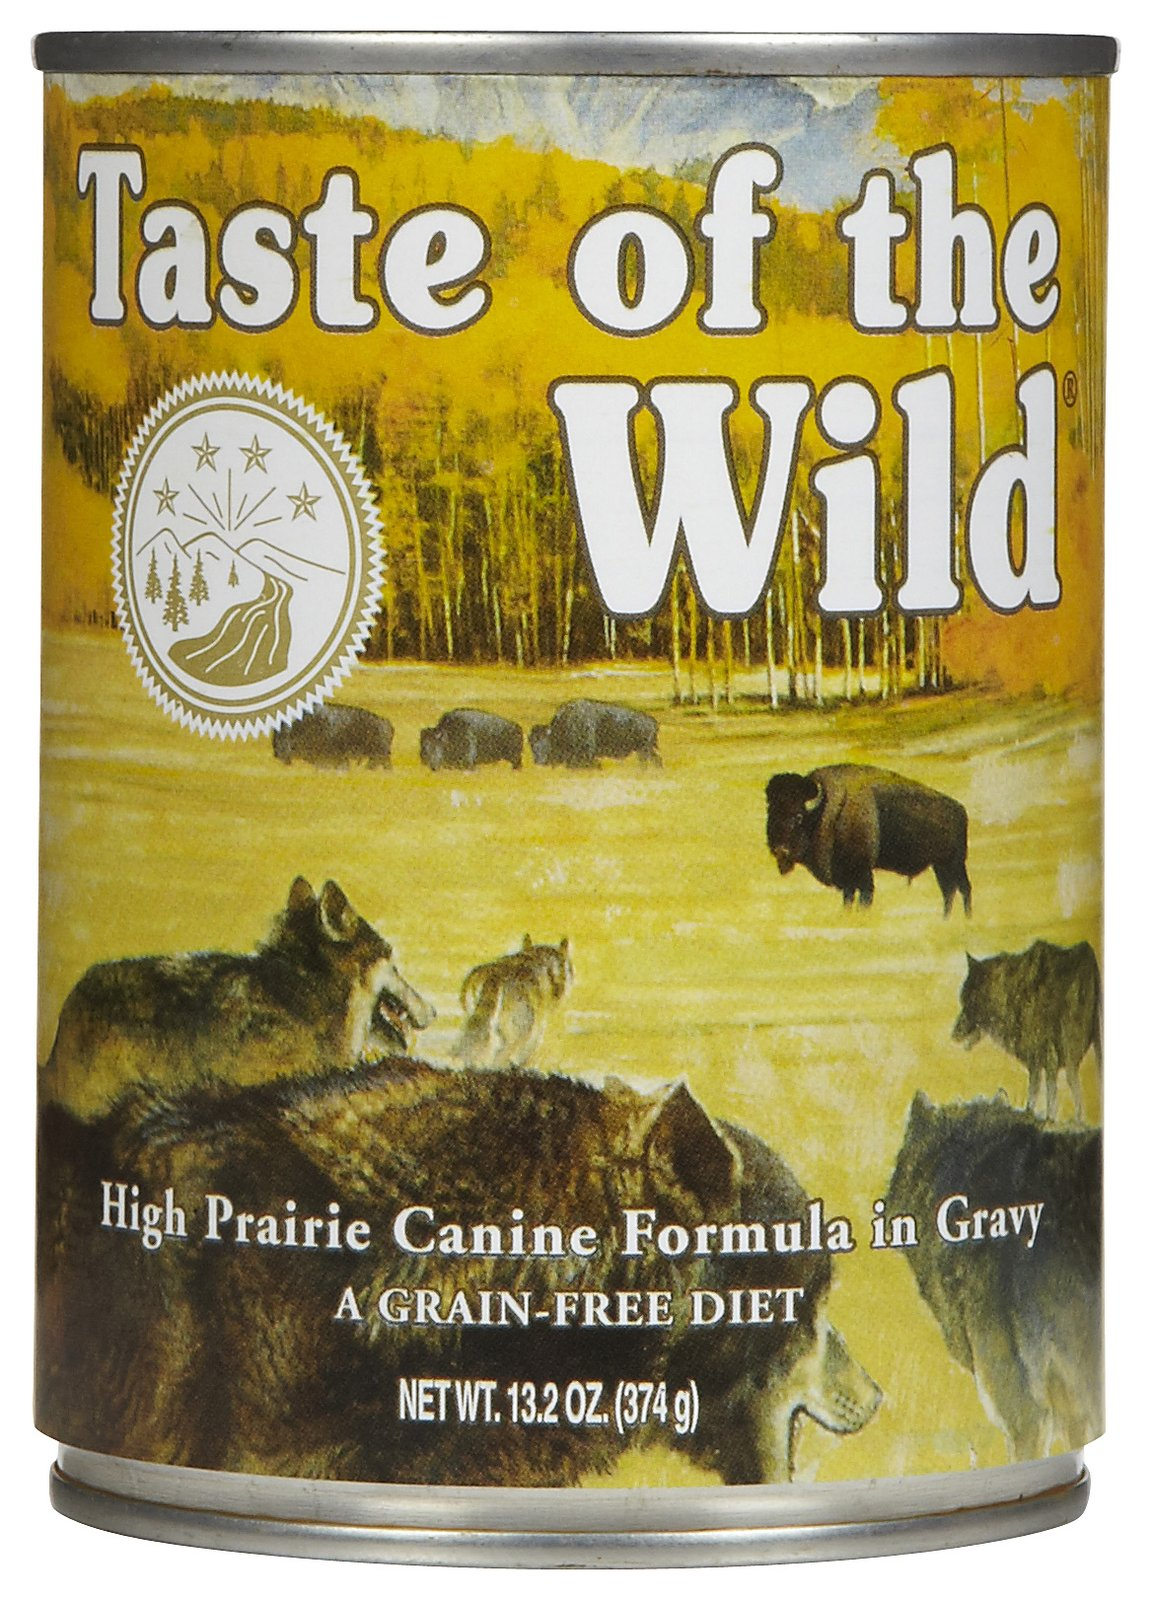 Taste of the Wild Canned High Prairie Canine Formula Dog Food